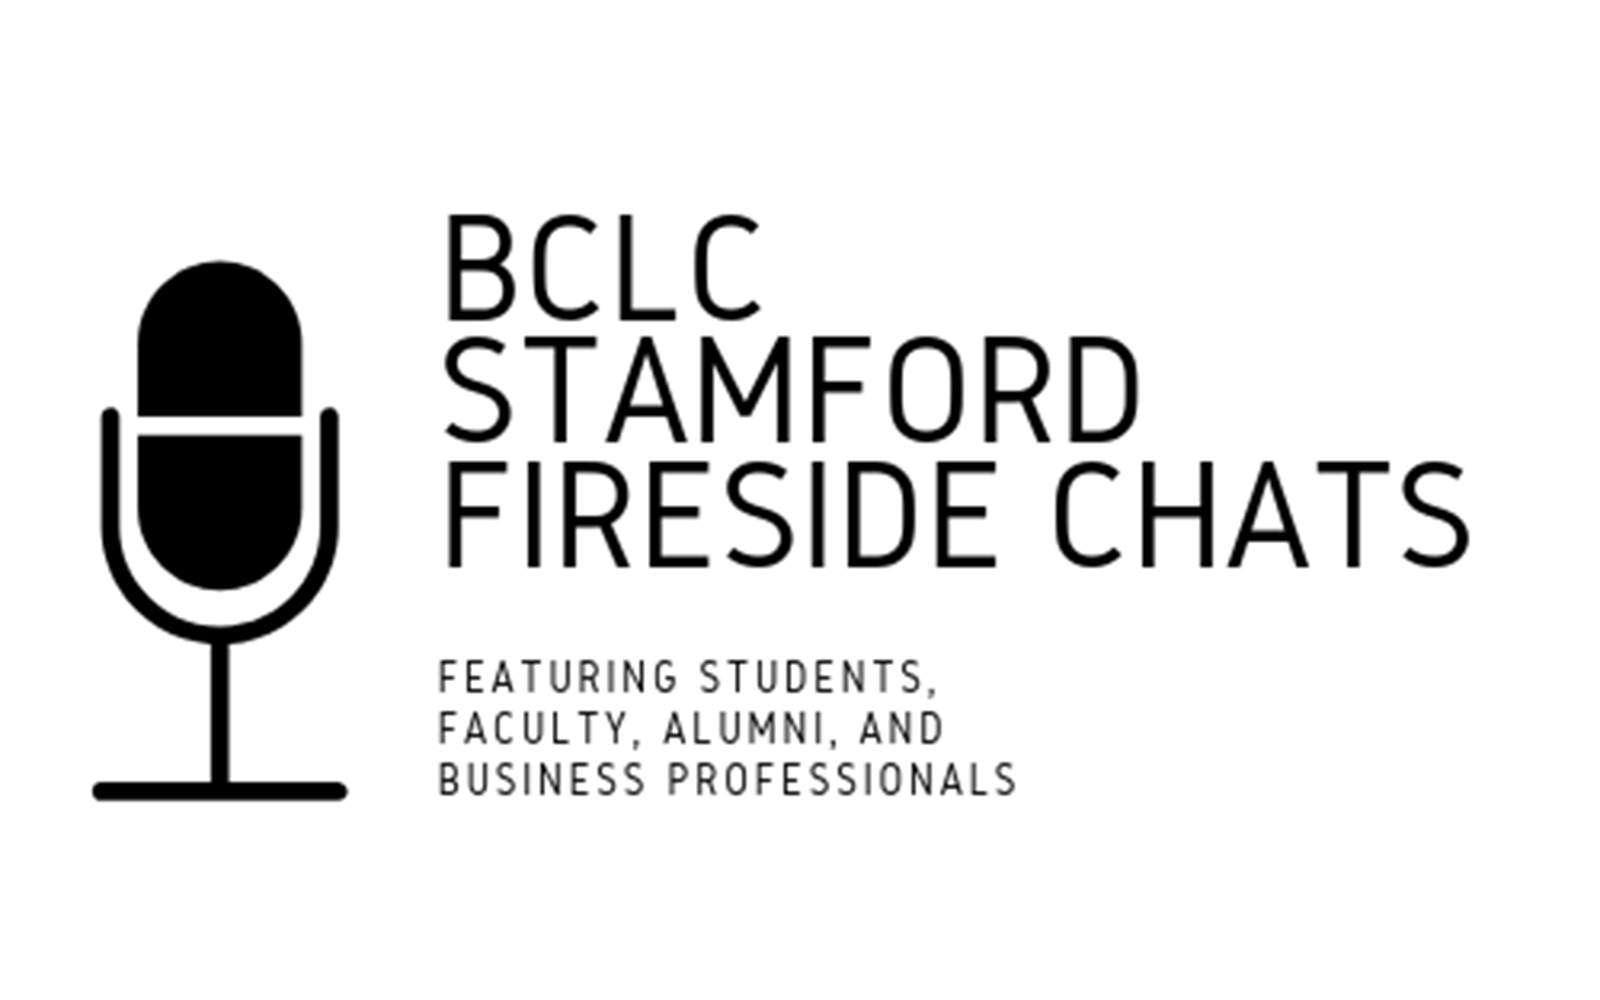 BCLC Stamford Fireside Chats LOGO 1600x1000